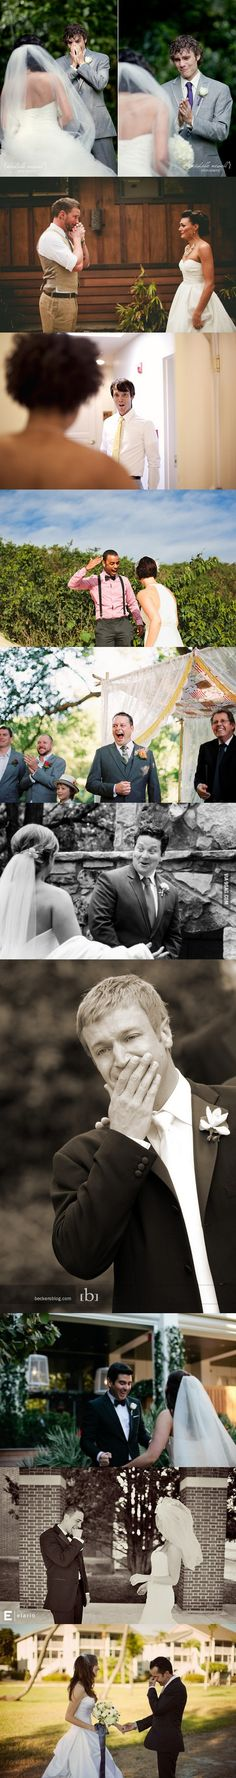 Men's Reactions To Their Brides On Their Wedding Day. too precious